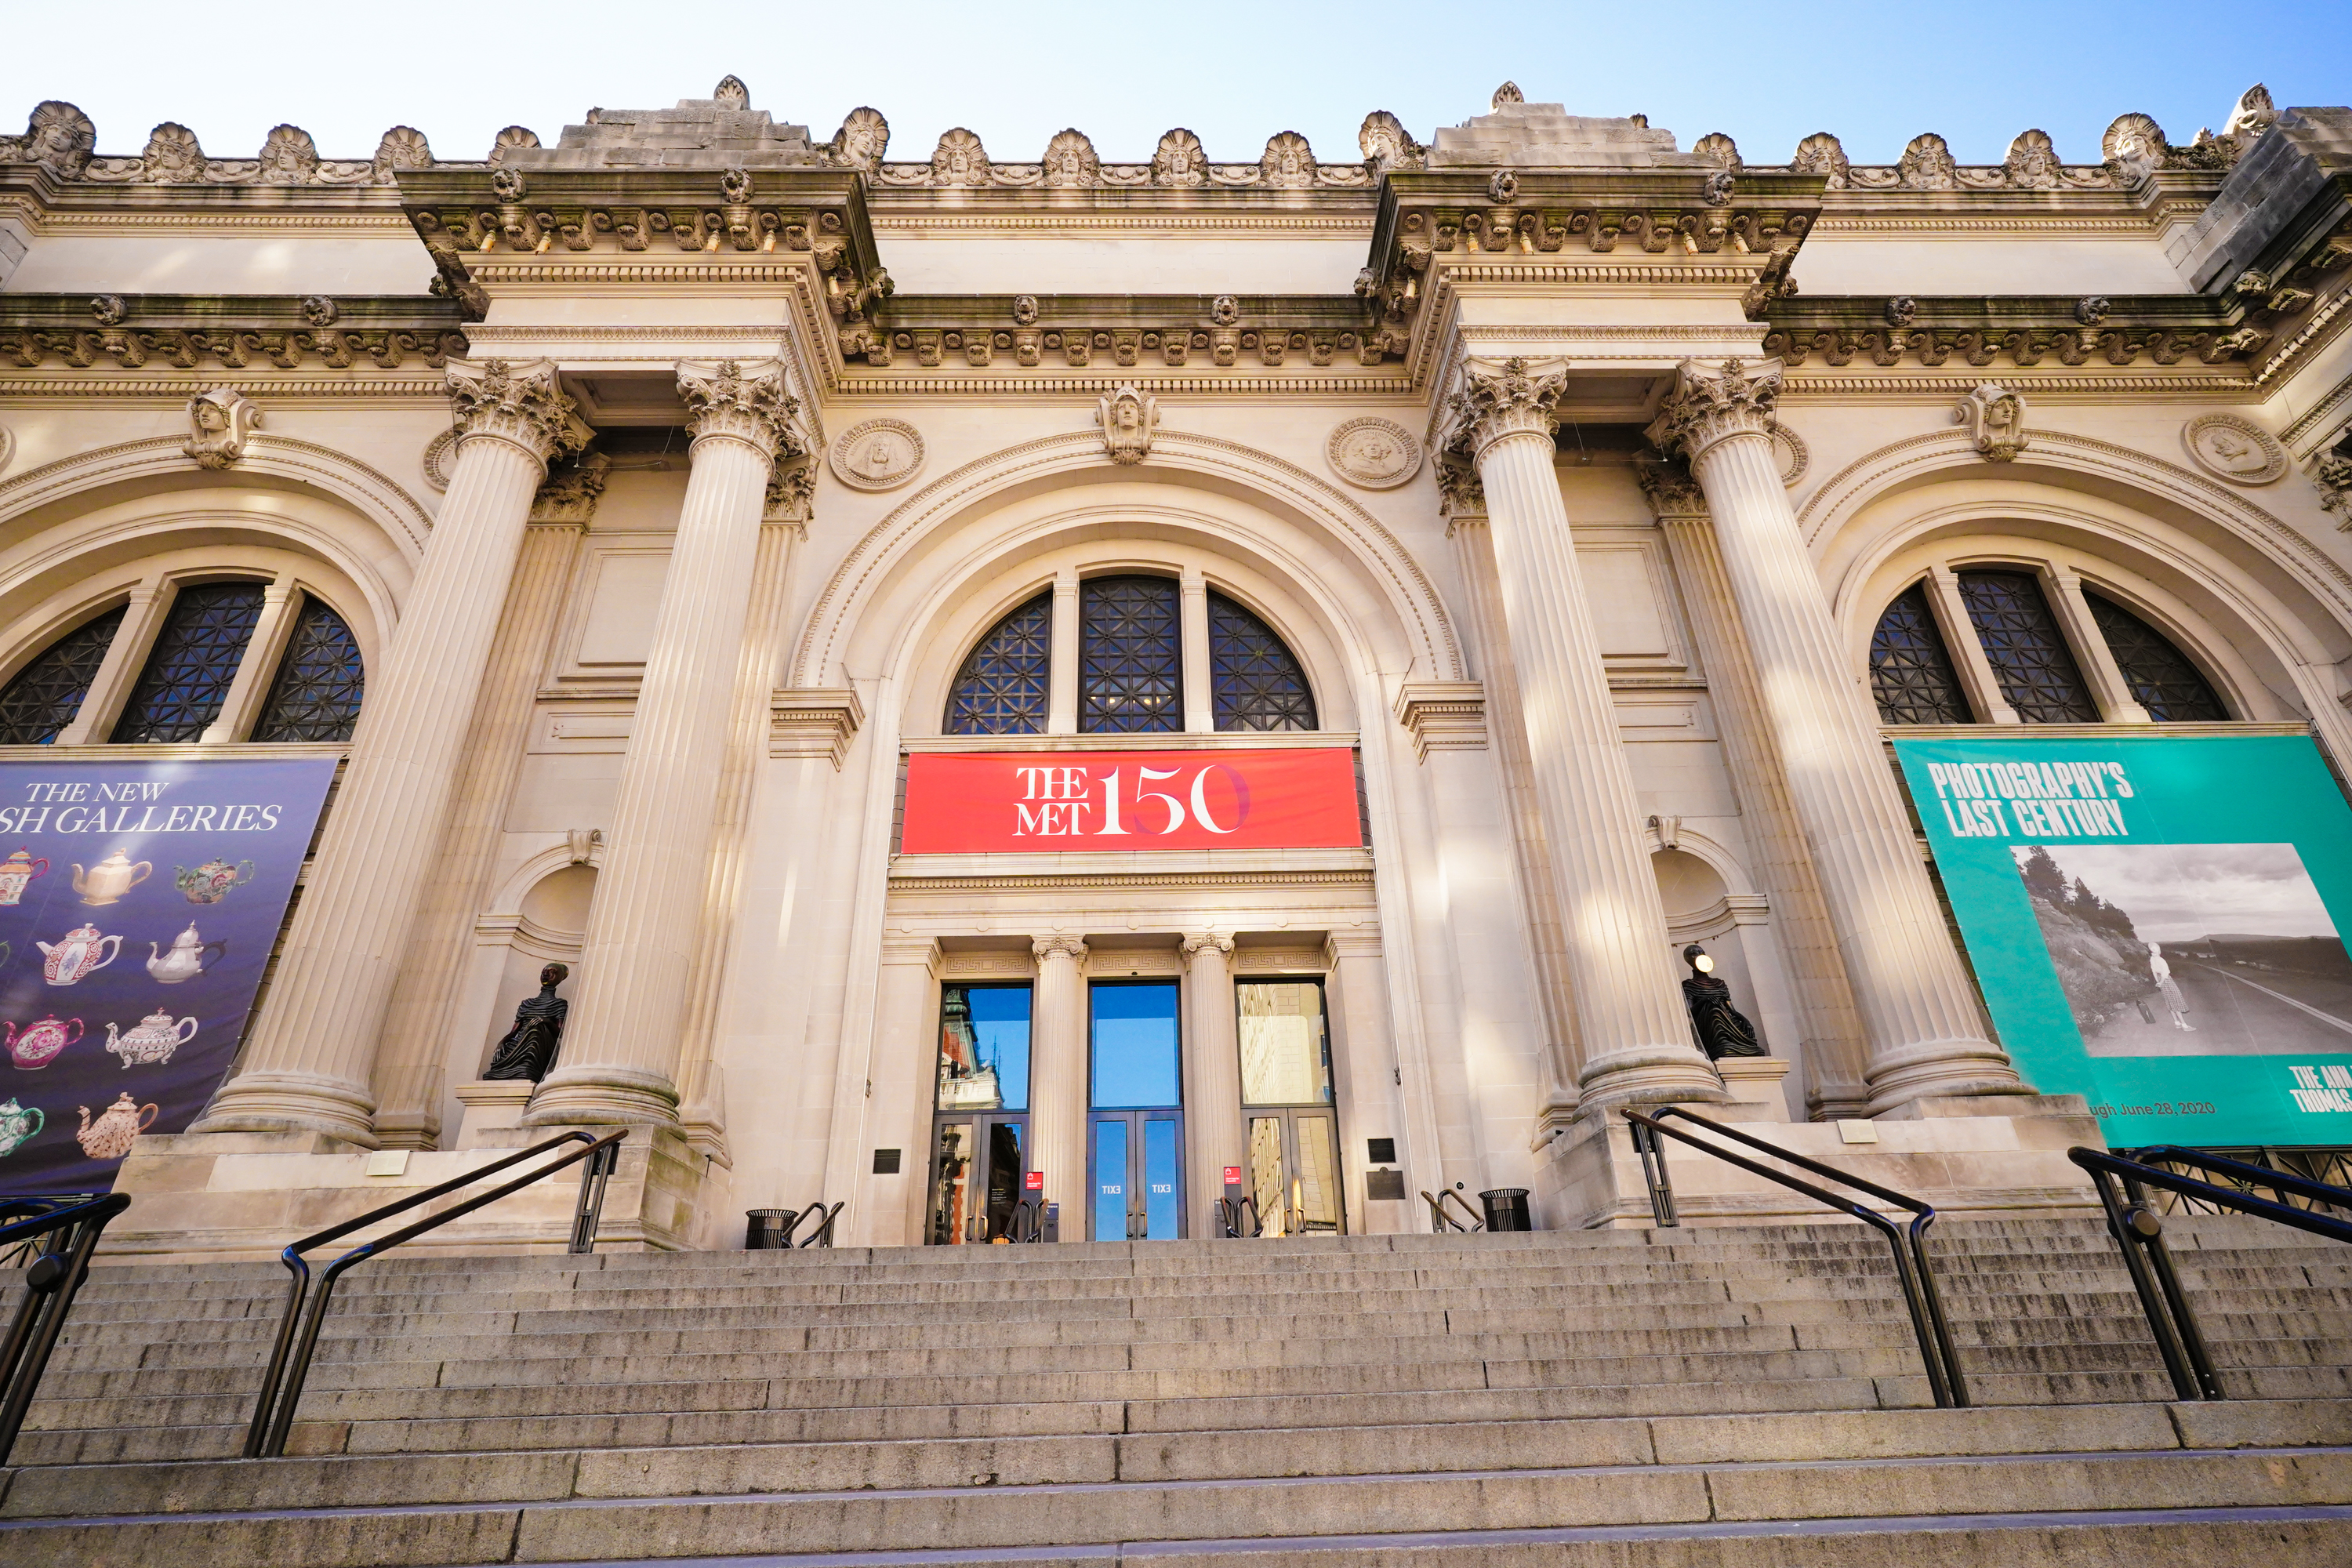 Museums in New York City Can Open on August 24, Governor Cuomo Announces